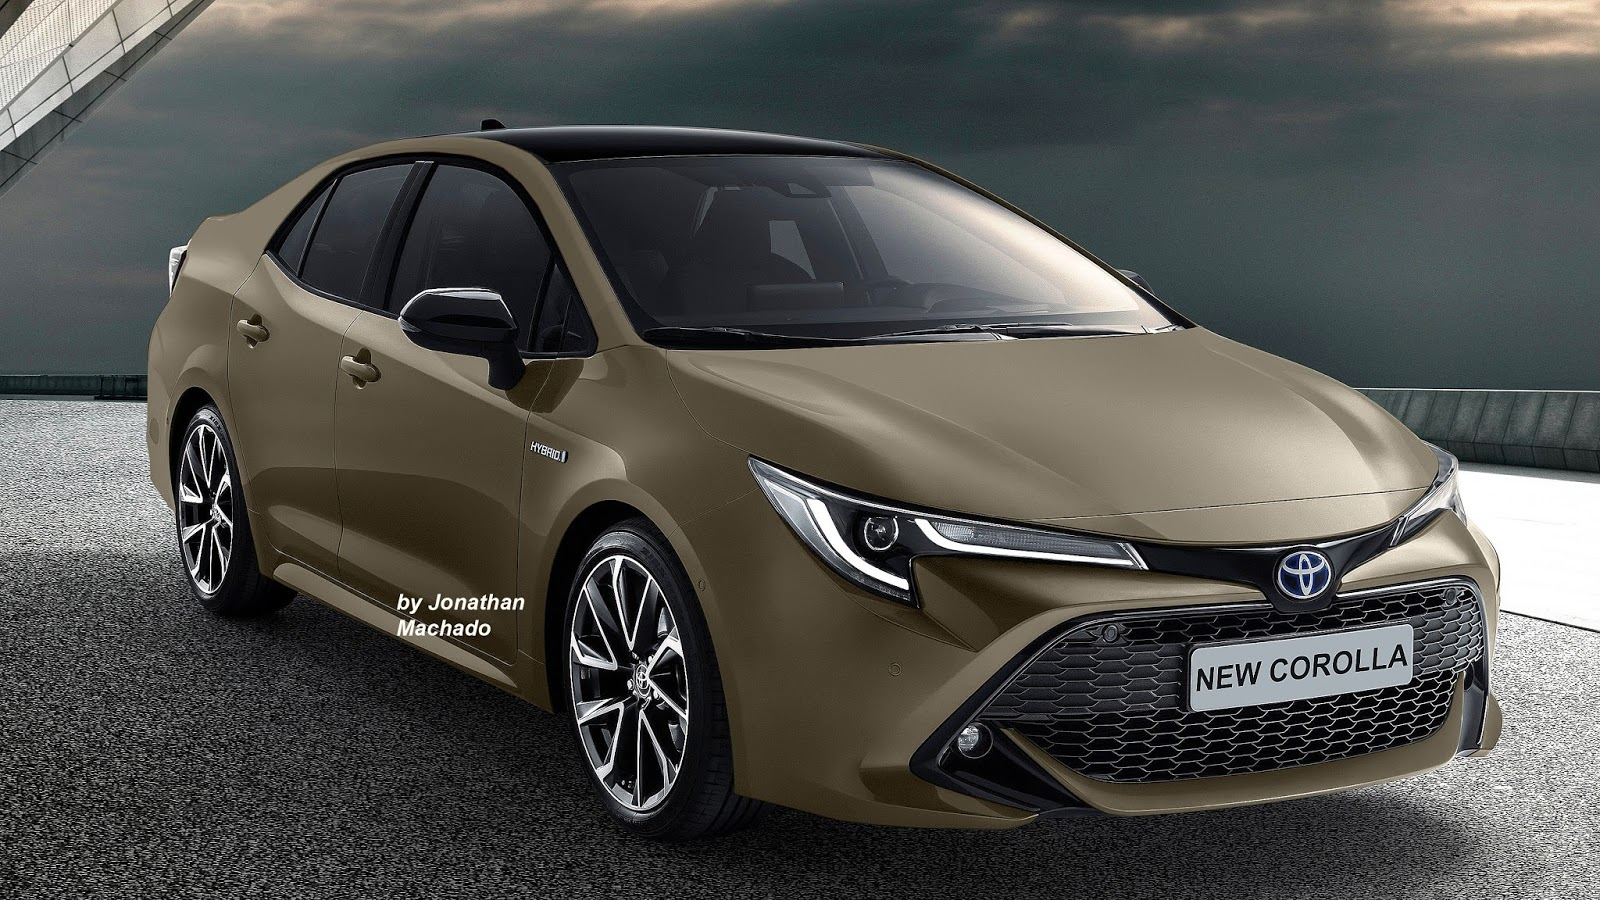 new corolla altis launch date innova venturer 2017 next gen 2019 toyota rendered in multiple colours like the recently launched yaris upcoming too will not offer a diesel engine